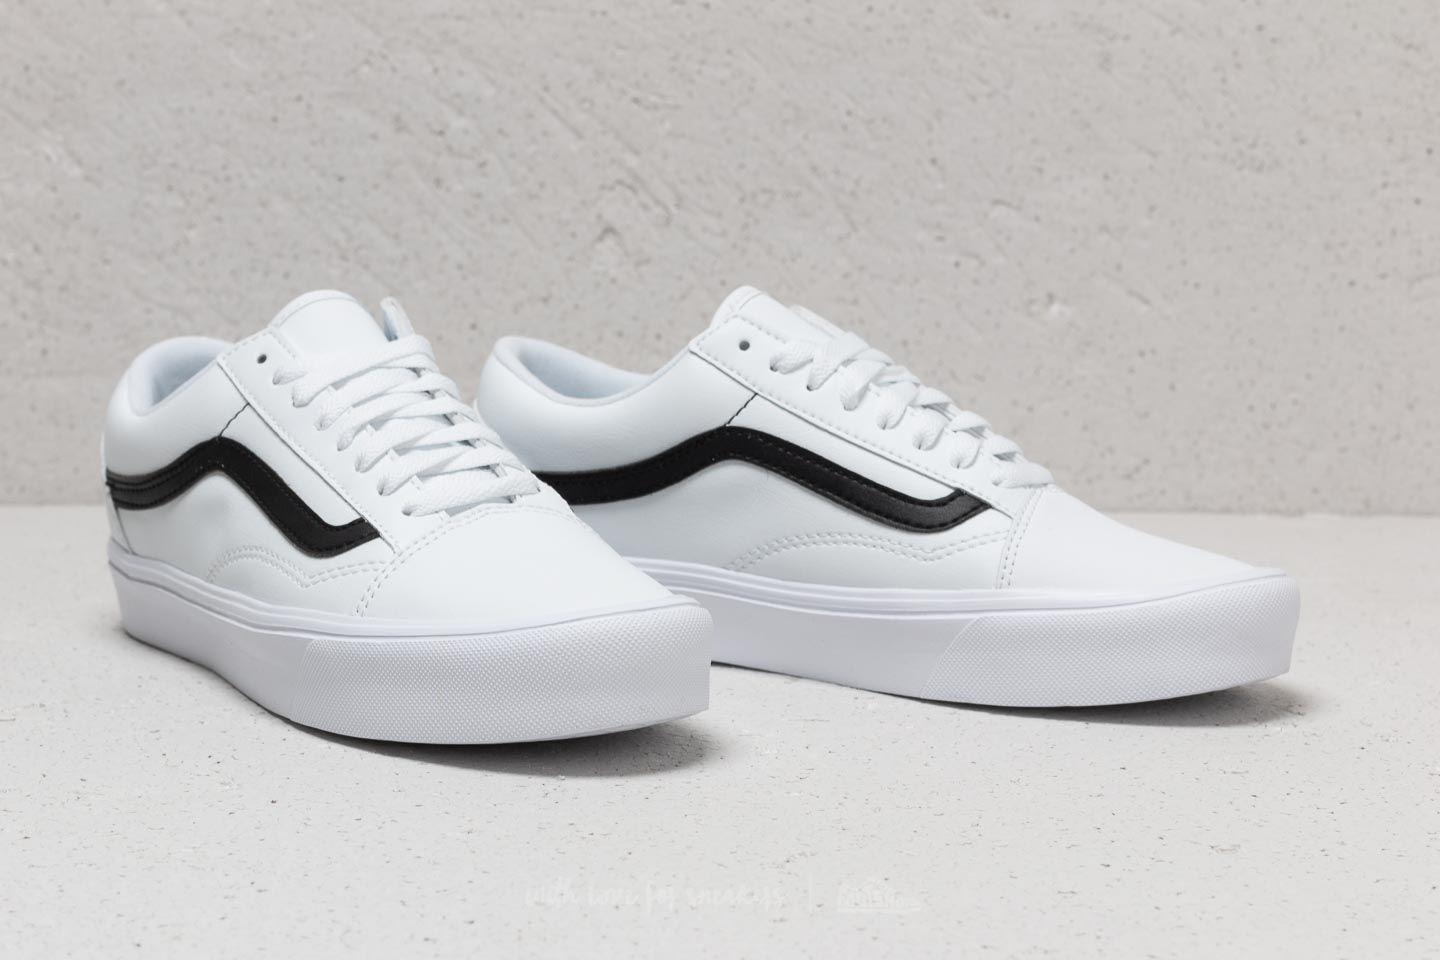 0054a3b380 Lyst - Vans Old Skool Lite (classic Tumble) True White  Black in ...